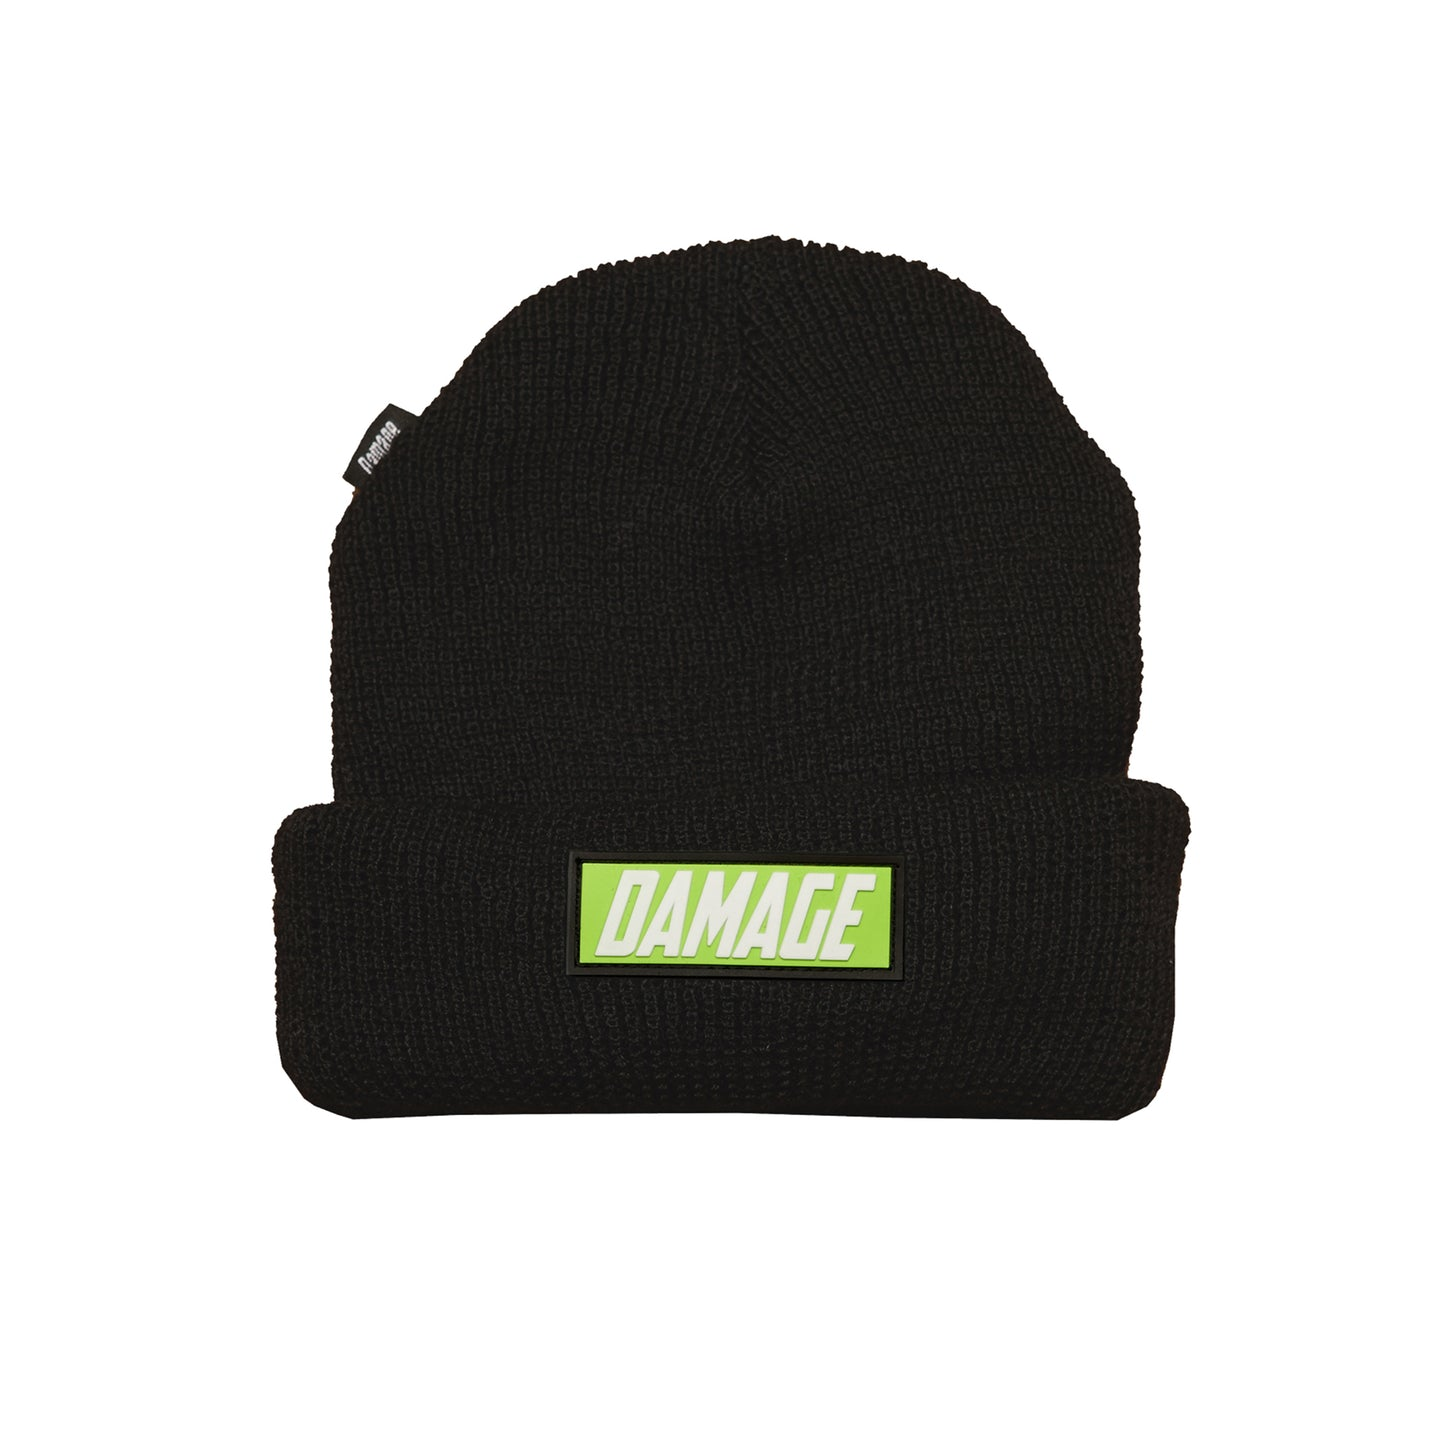 Damage corp. - Watch Cap Beanie